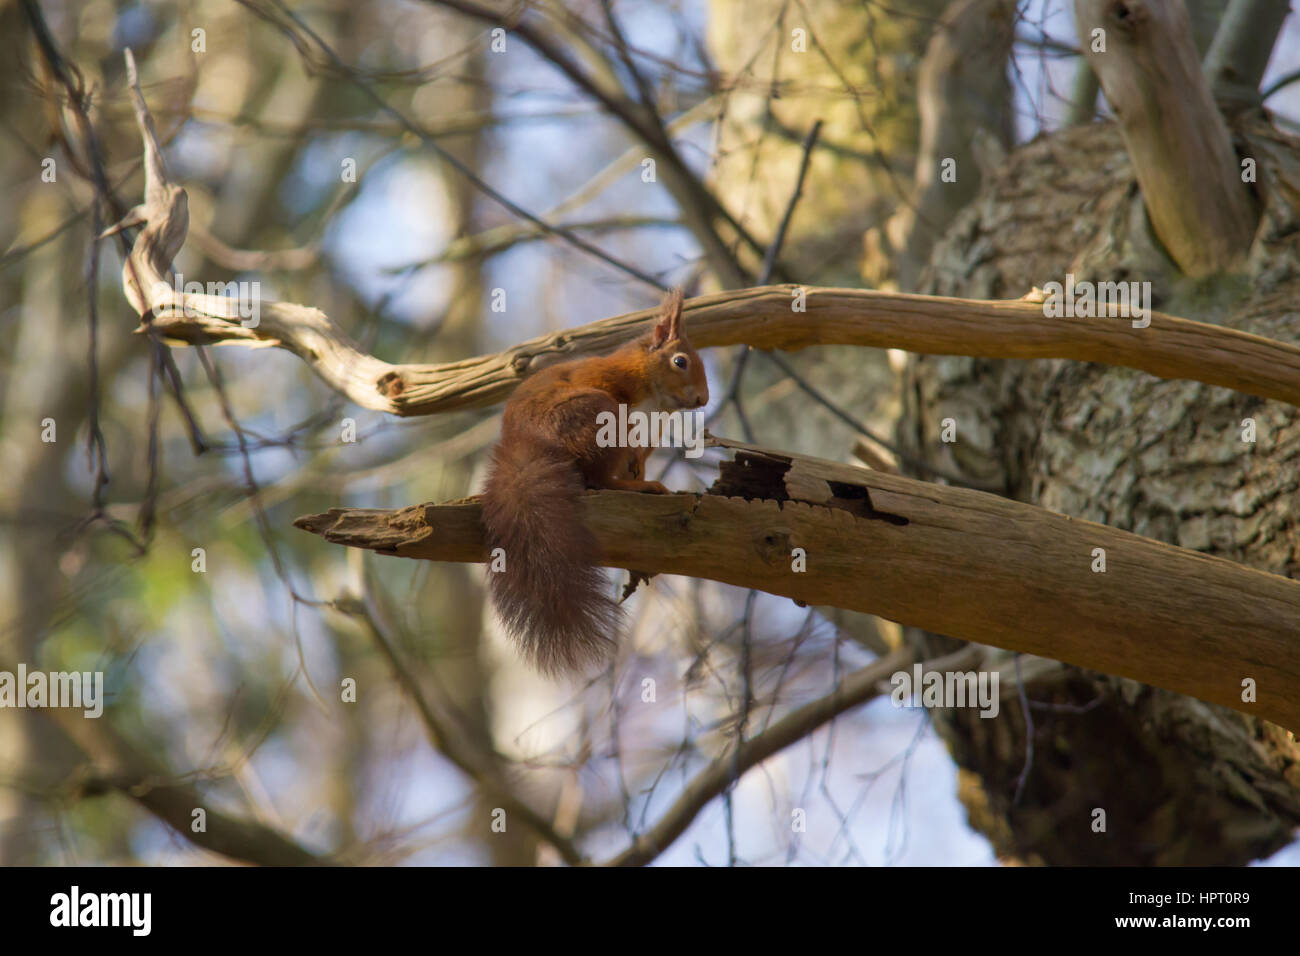 Red Squirrel or Eurasian Red Squirrel (Sciurus vulgaris) - Stock Image